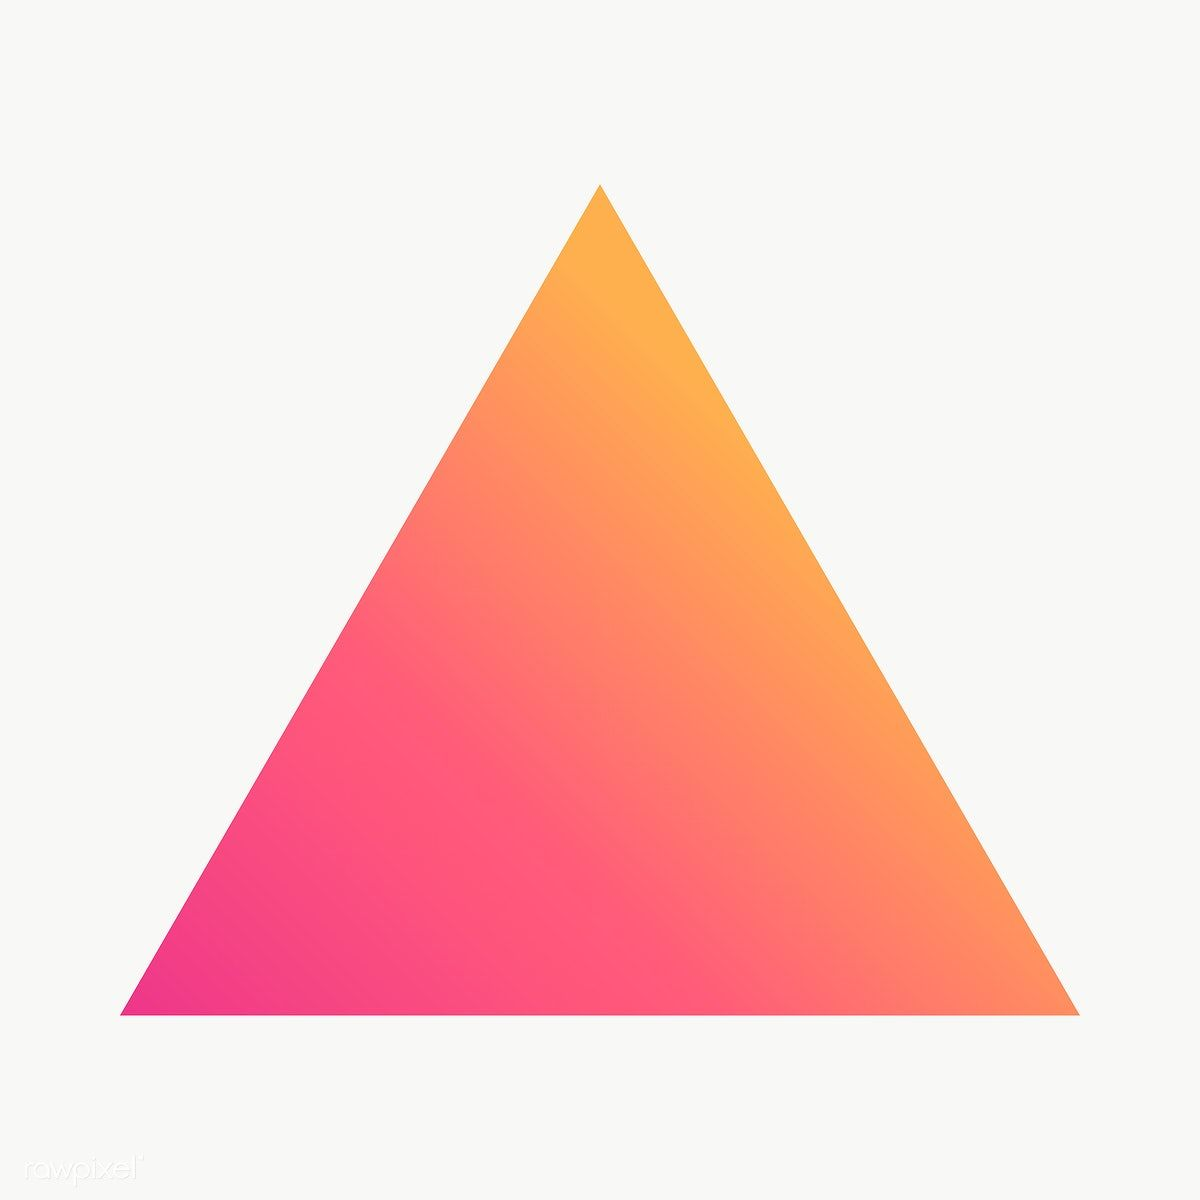 Gradient Triangle Geometric Shape Transparent Png Free Image By Rawpixel Com Ningzk V Printable Designs Geometric Shapes Geometric